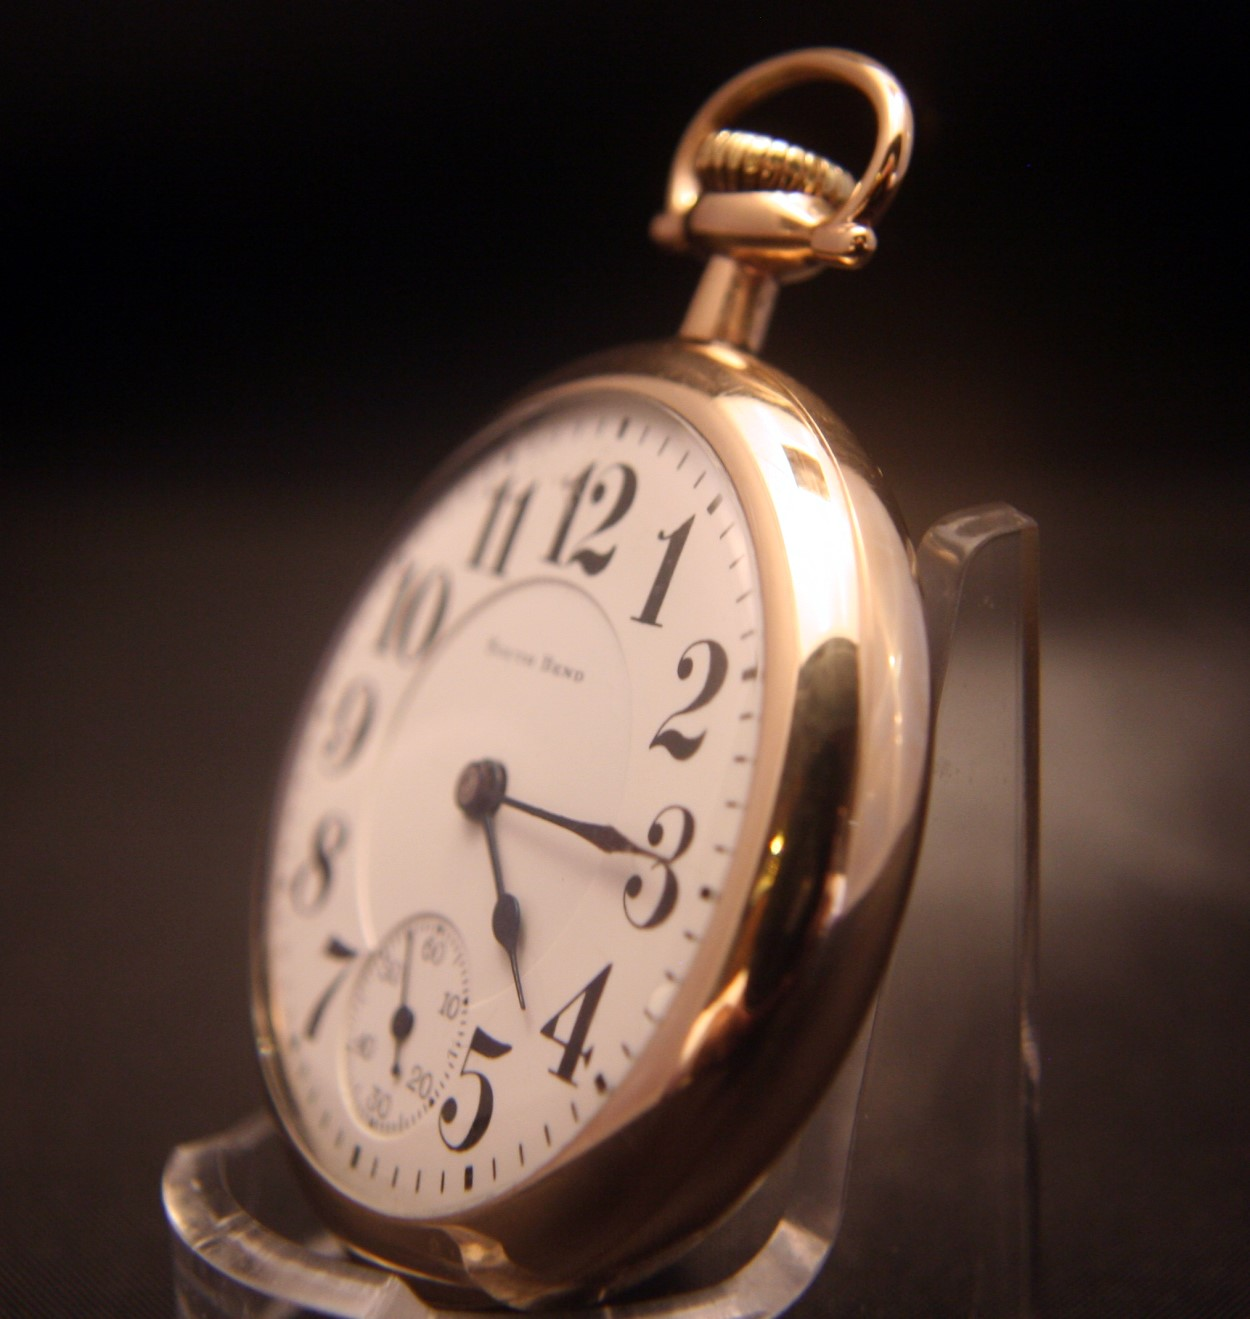 South Bend Pocket Watch Sales and Service